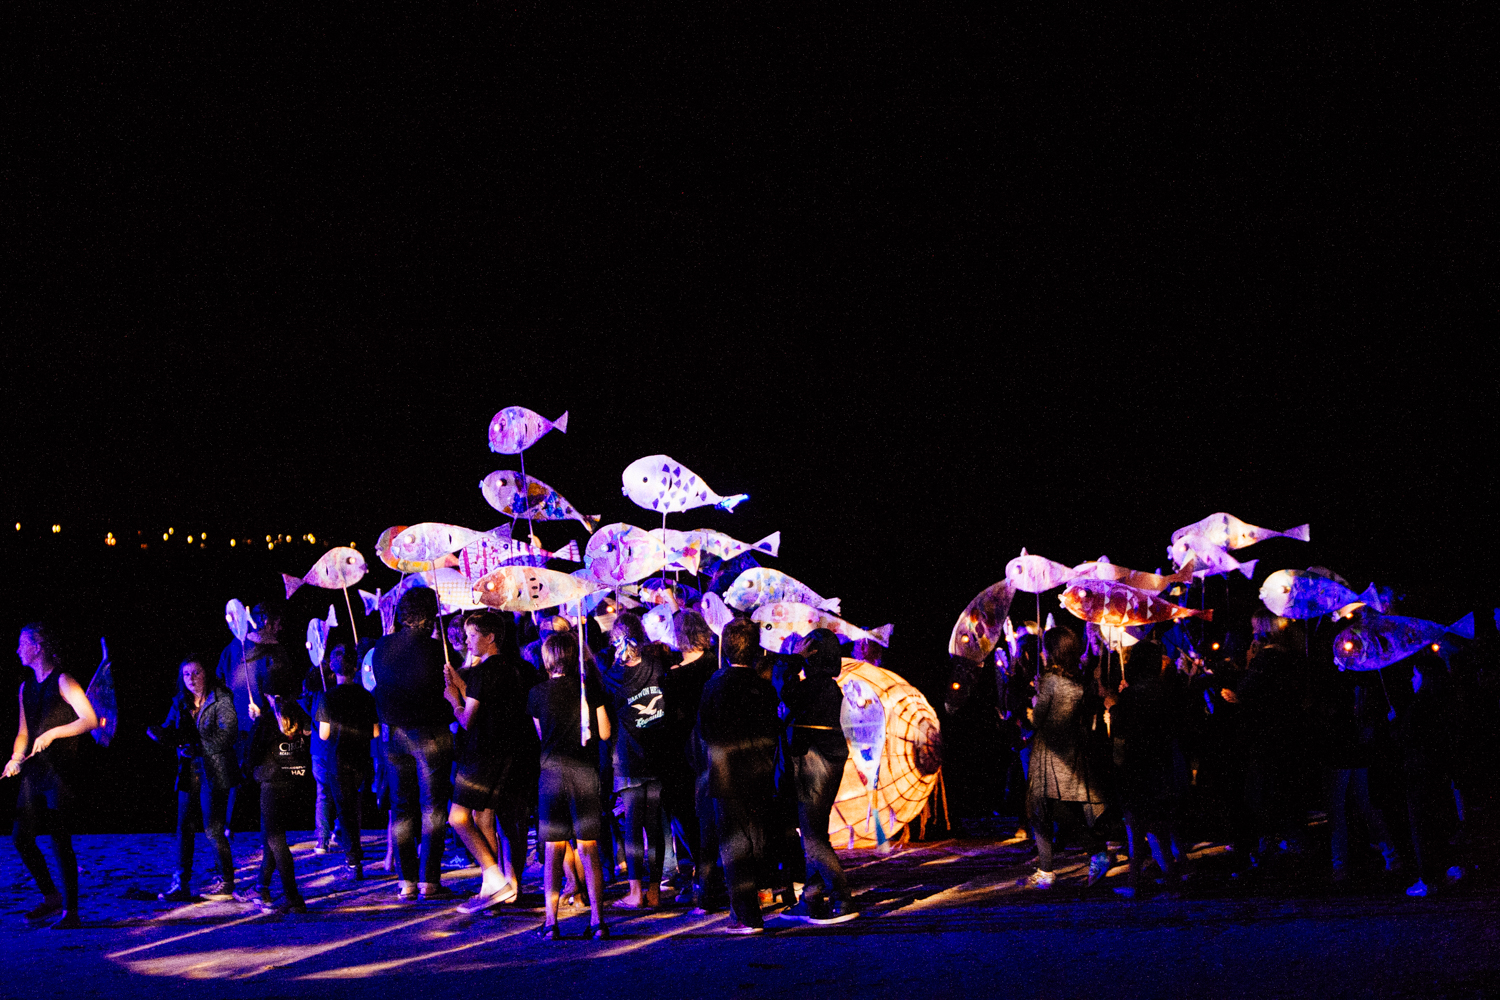 The school of fish puppets at The Gathering of the Elements ceremony.   Image by Dean Walters Photography .